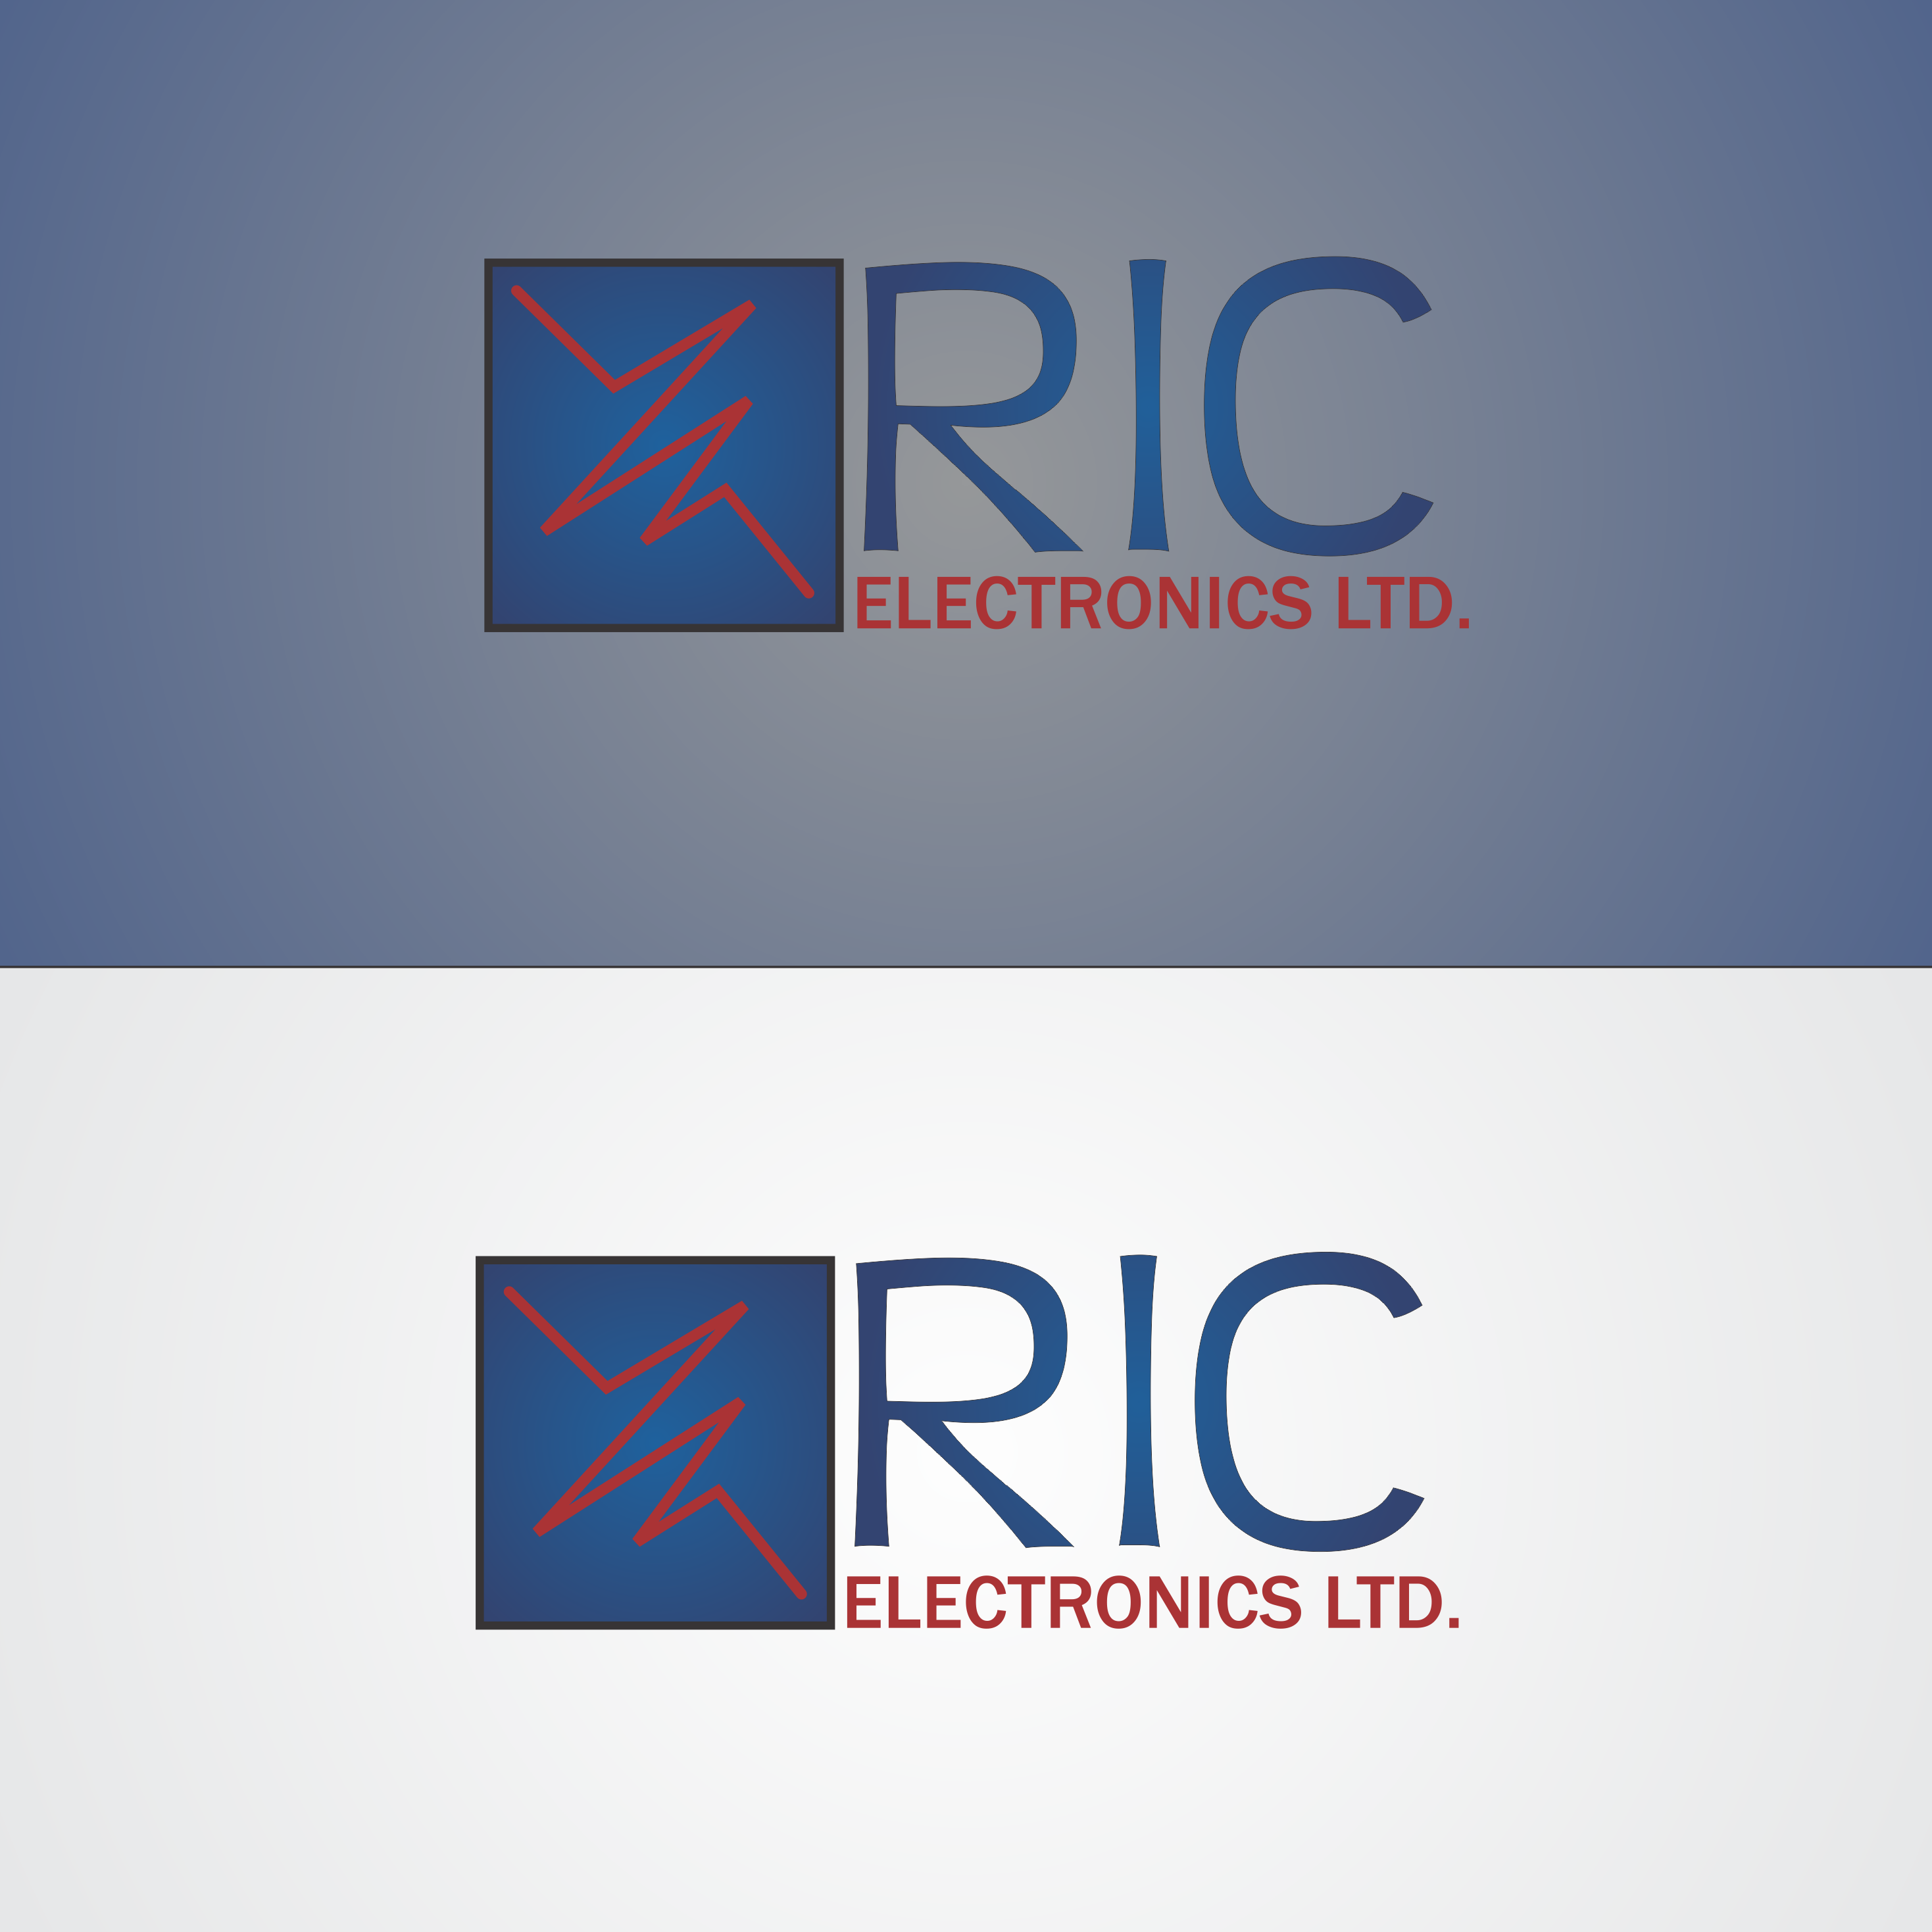 Logo Design by robbiemack - Entry No. 71 in the Logo Design Contest New Logo Design for RIC Electronics Ltd..